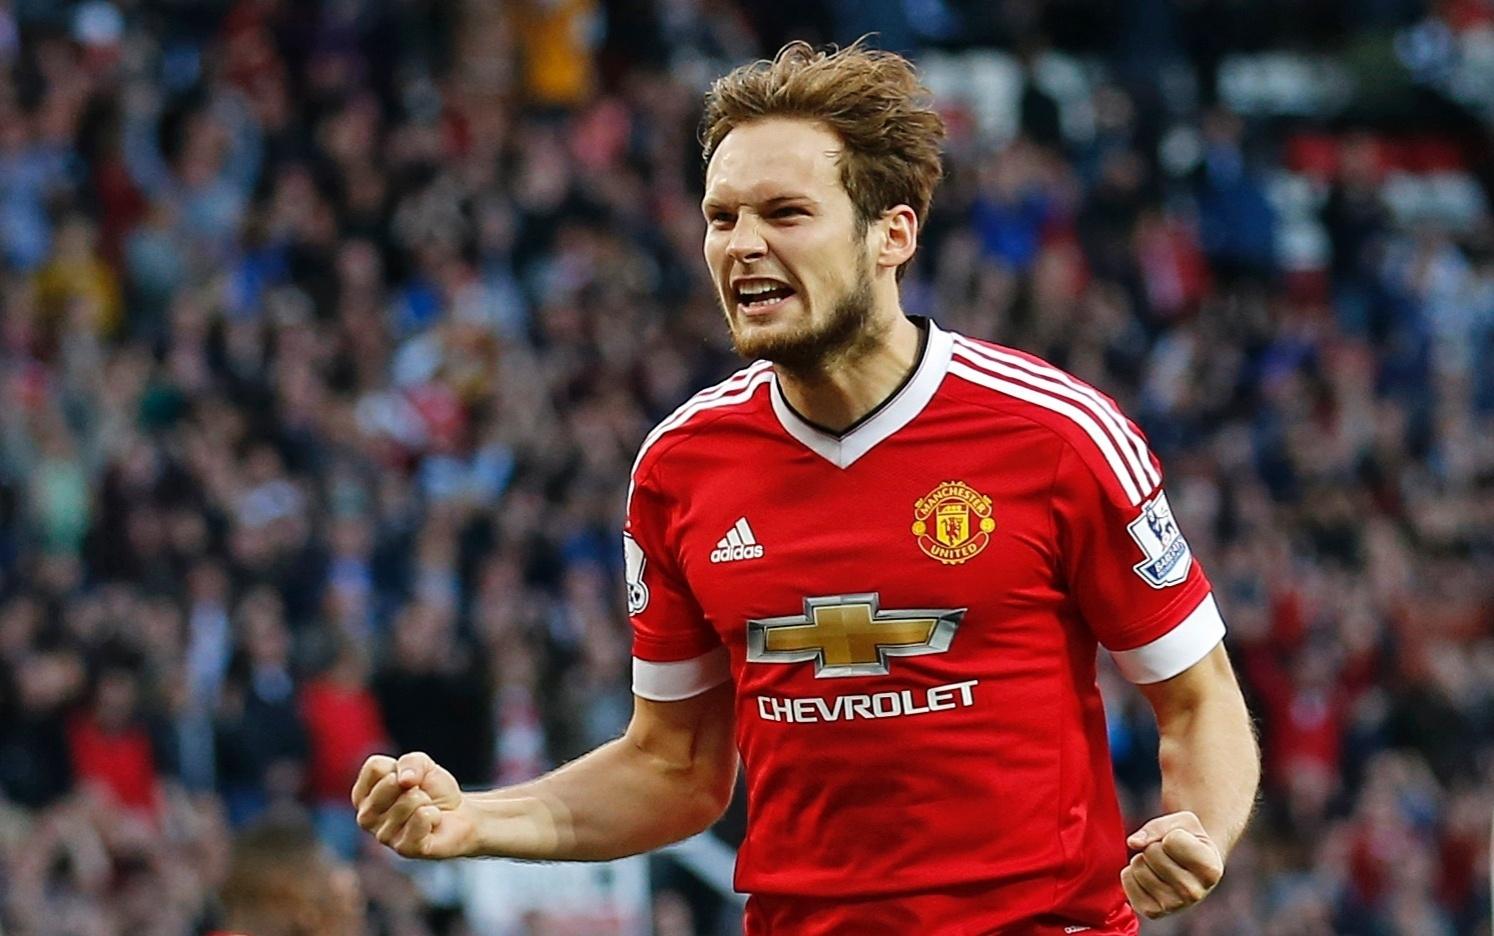 Daley Blind comemora o primeiro gol do Manchester United sobre o Liverpool